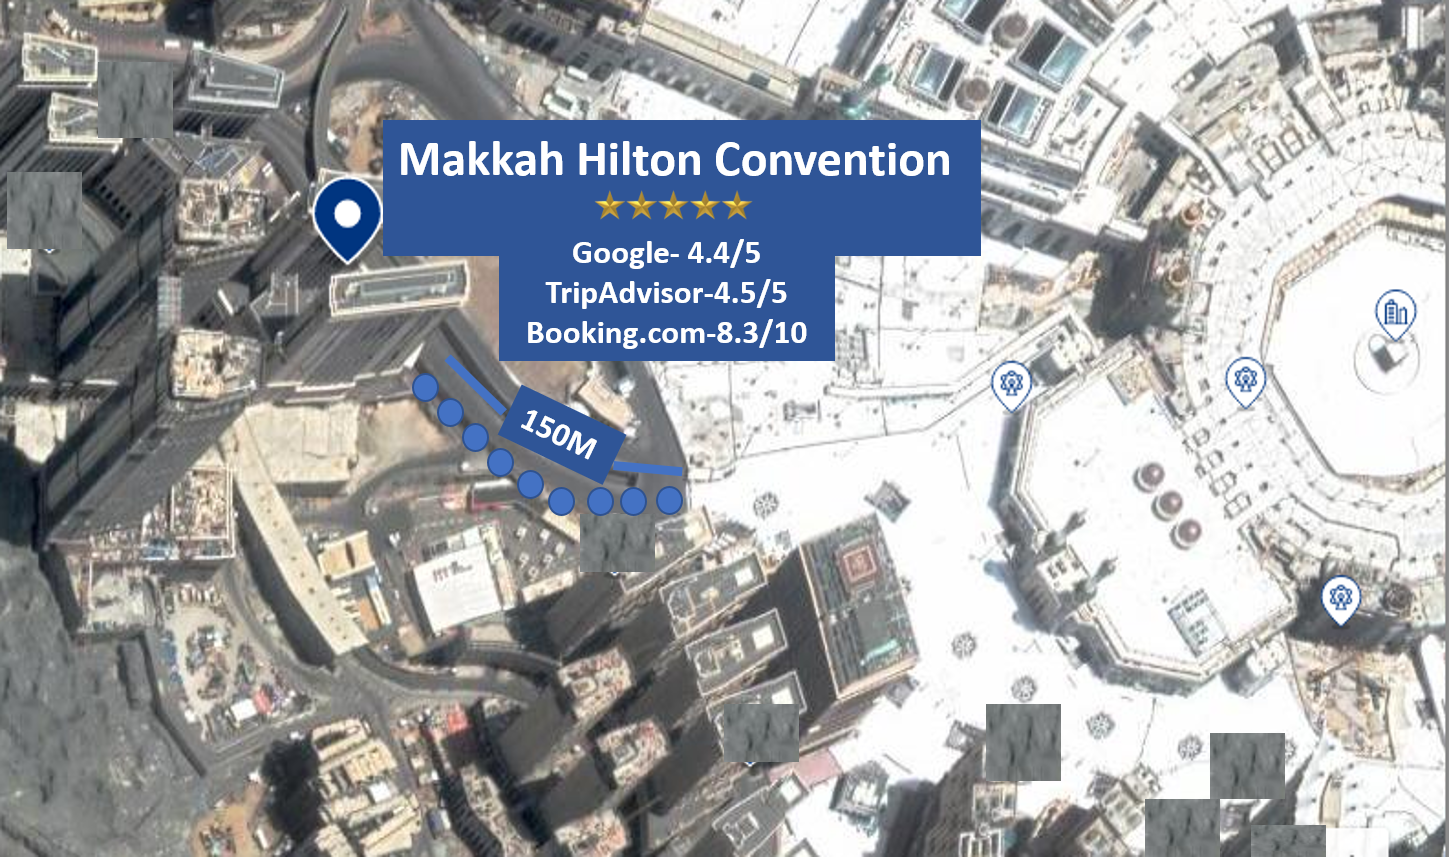 distance between Hilton Convention hotel to Haram